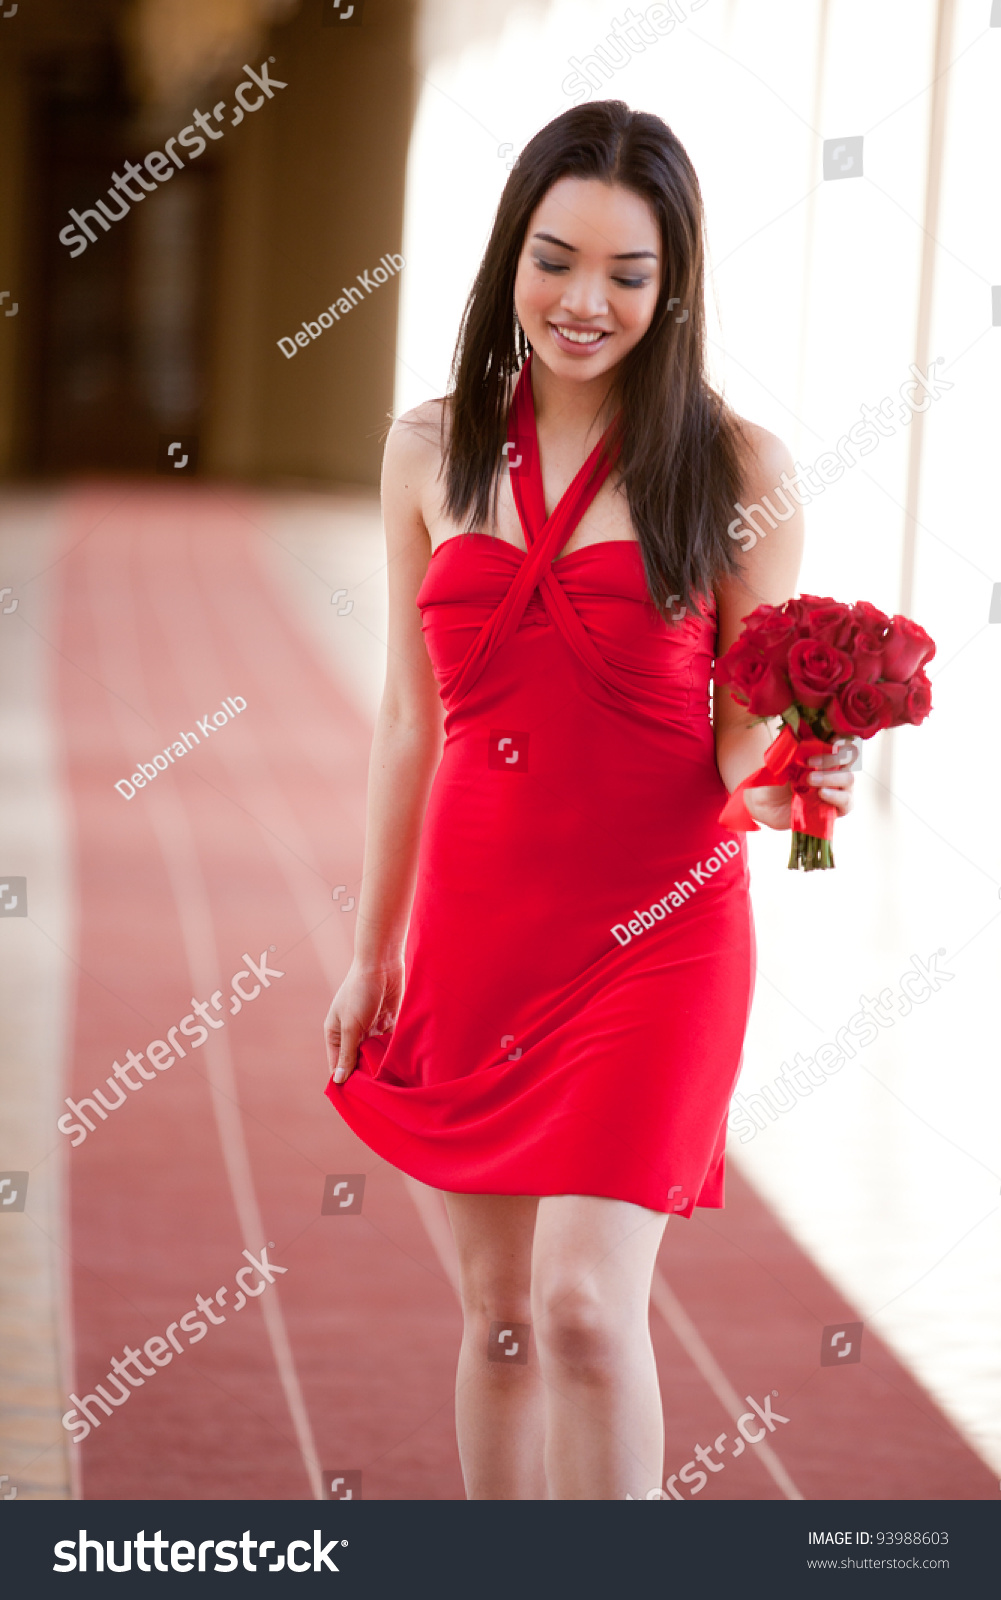 Sexy Red Dress Valentines Day Stock Photo 93988603 - Shutterstock